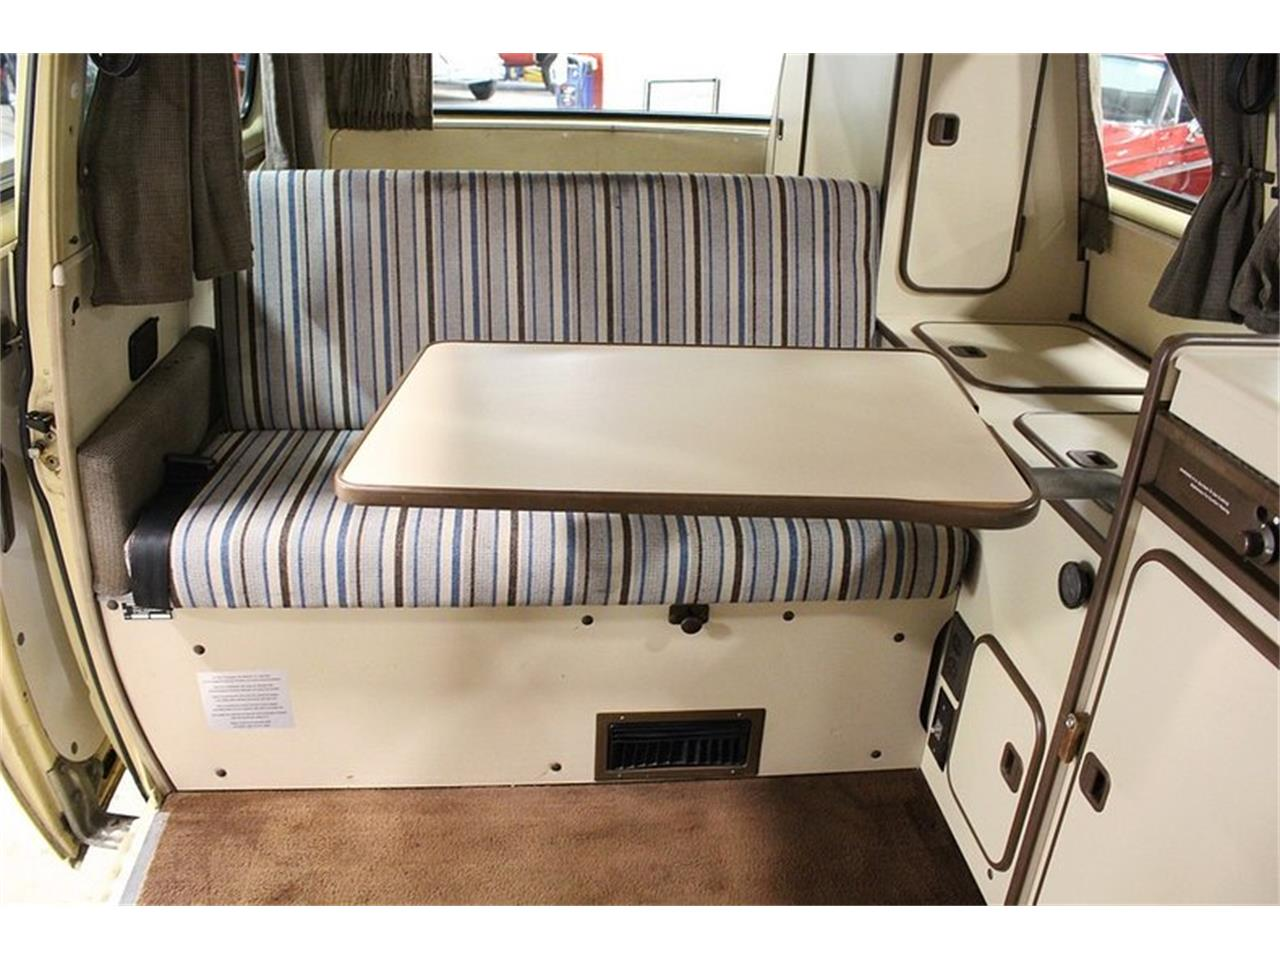 Large Picture of 1983 Volkswagen Westfalia Camper - $15,900.00 - OIFP